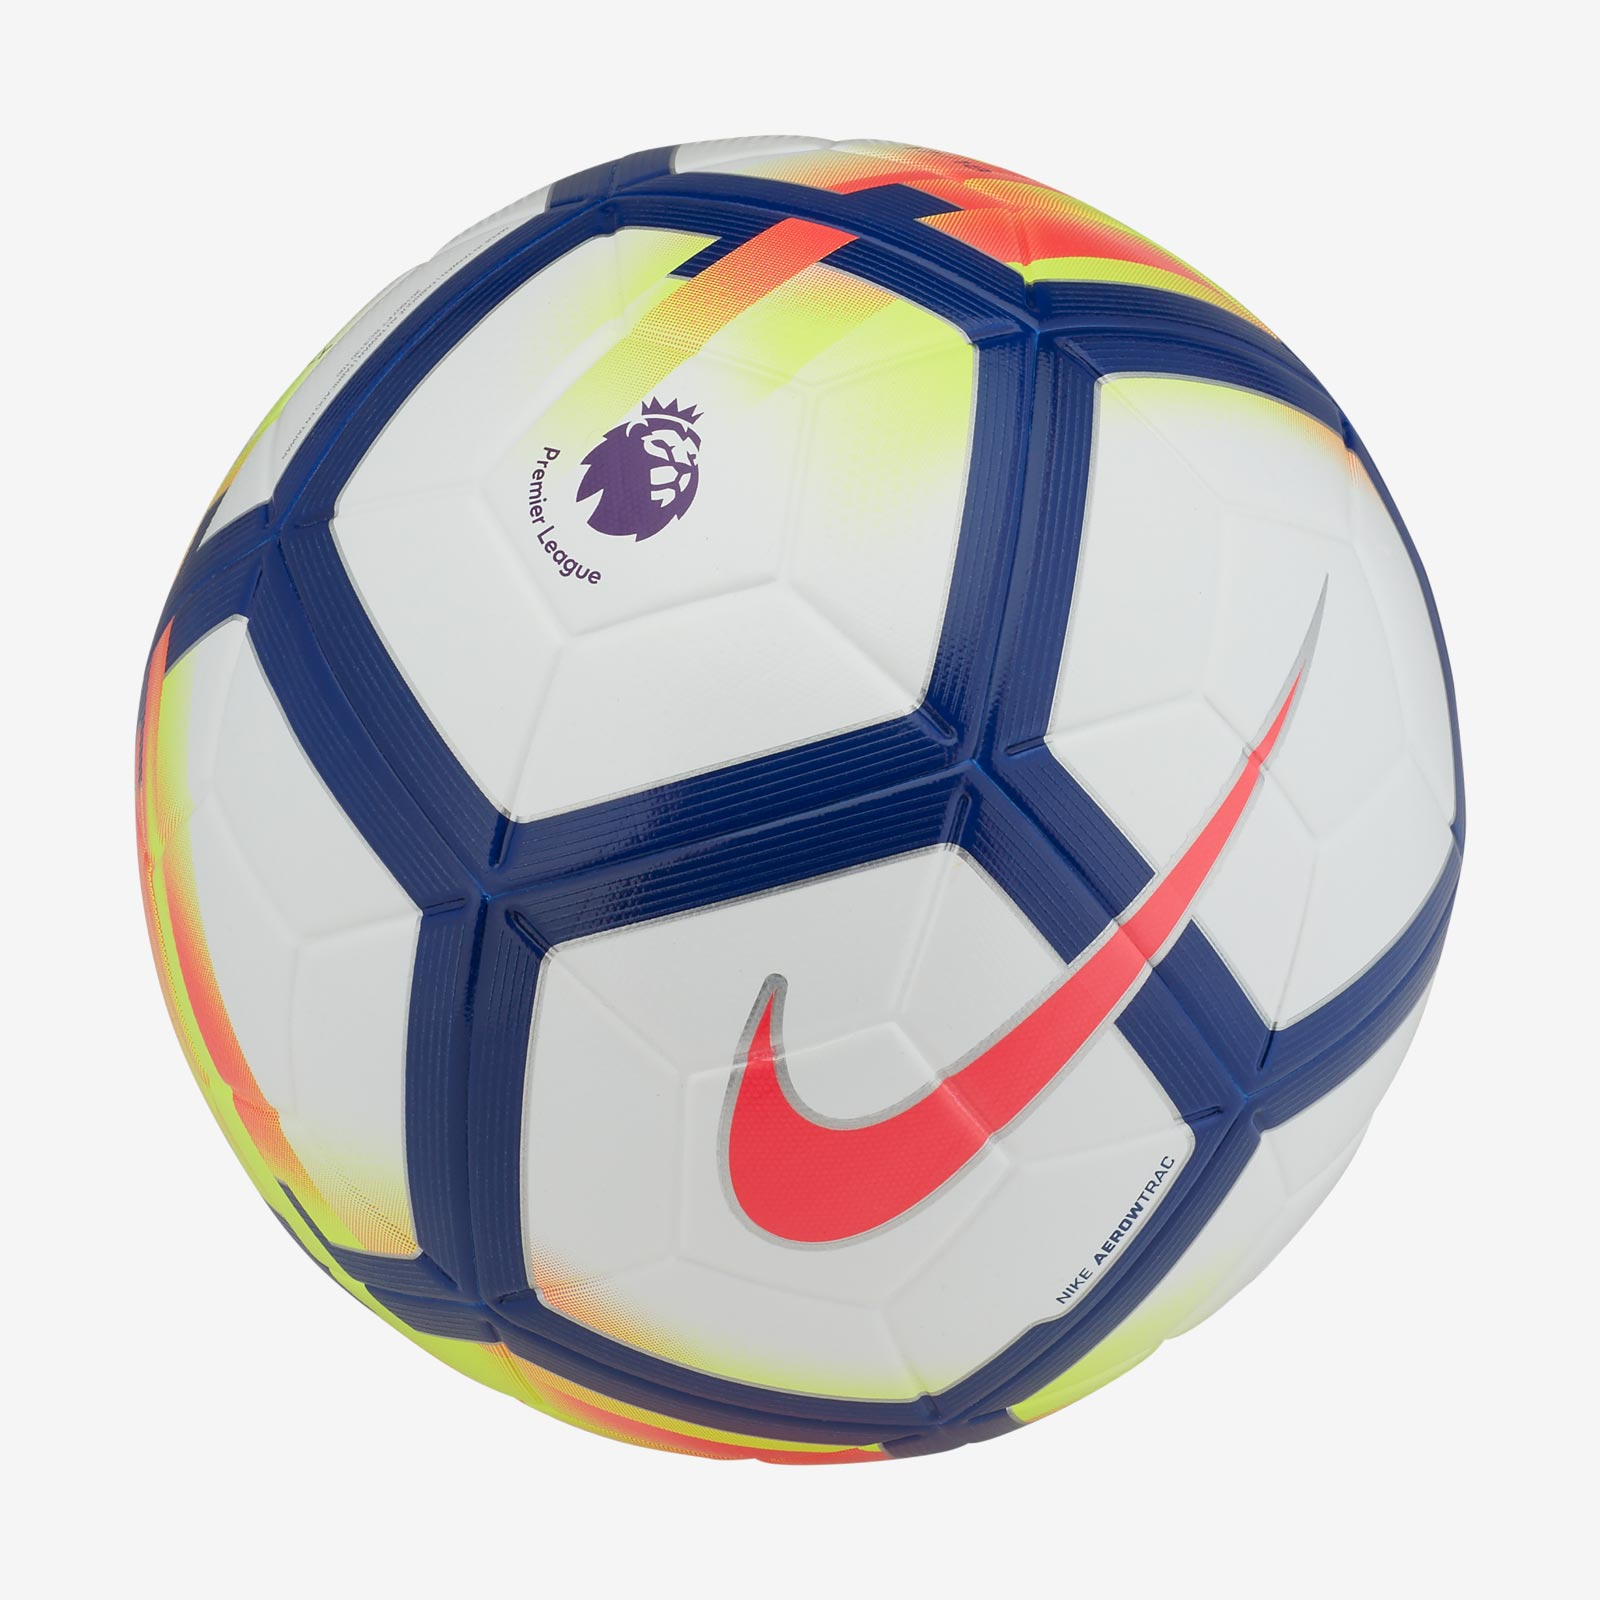 Nike Ordem V 2017-18 Premier League Ball Revealed - Footy ...